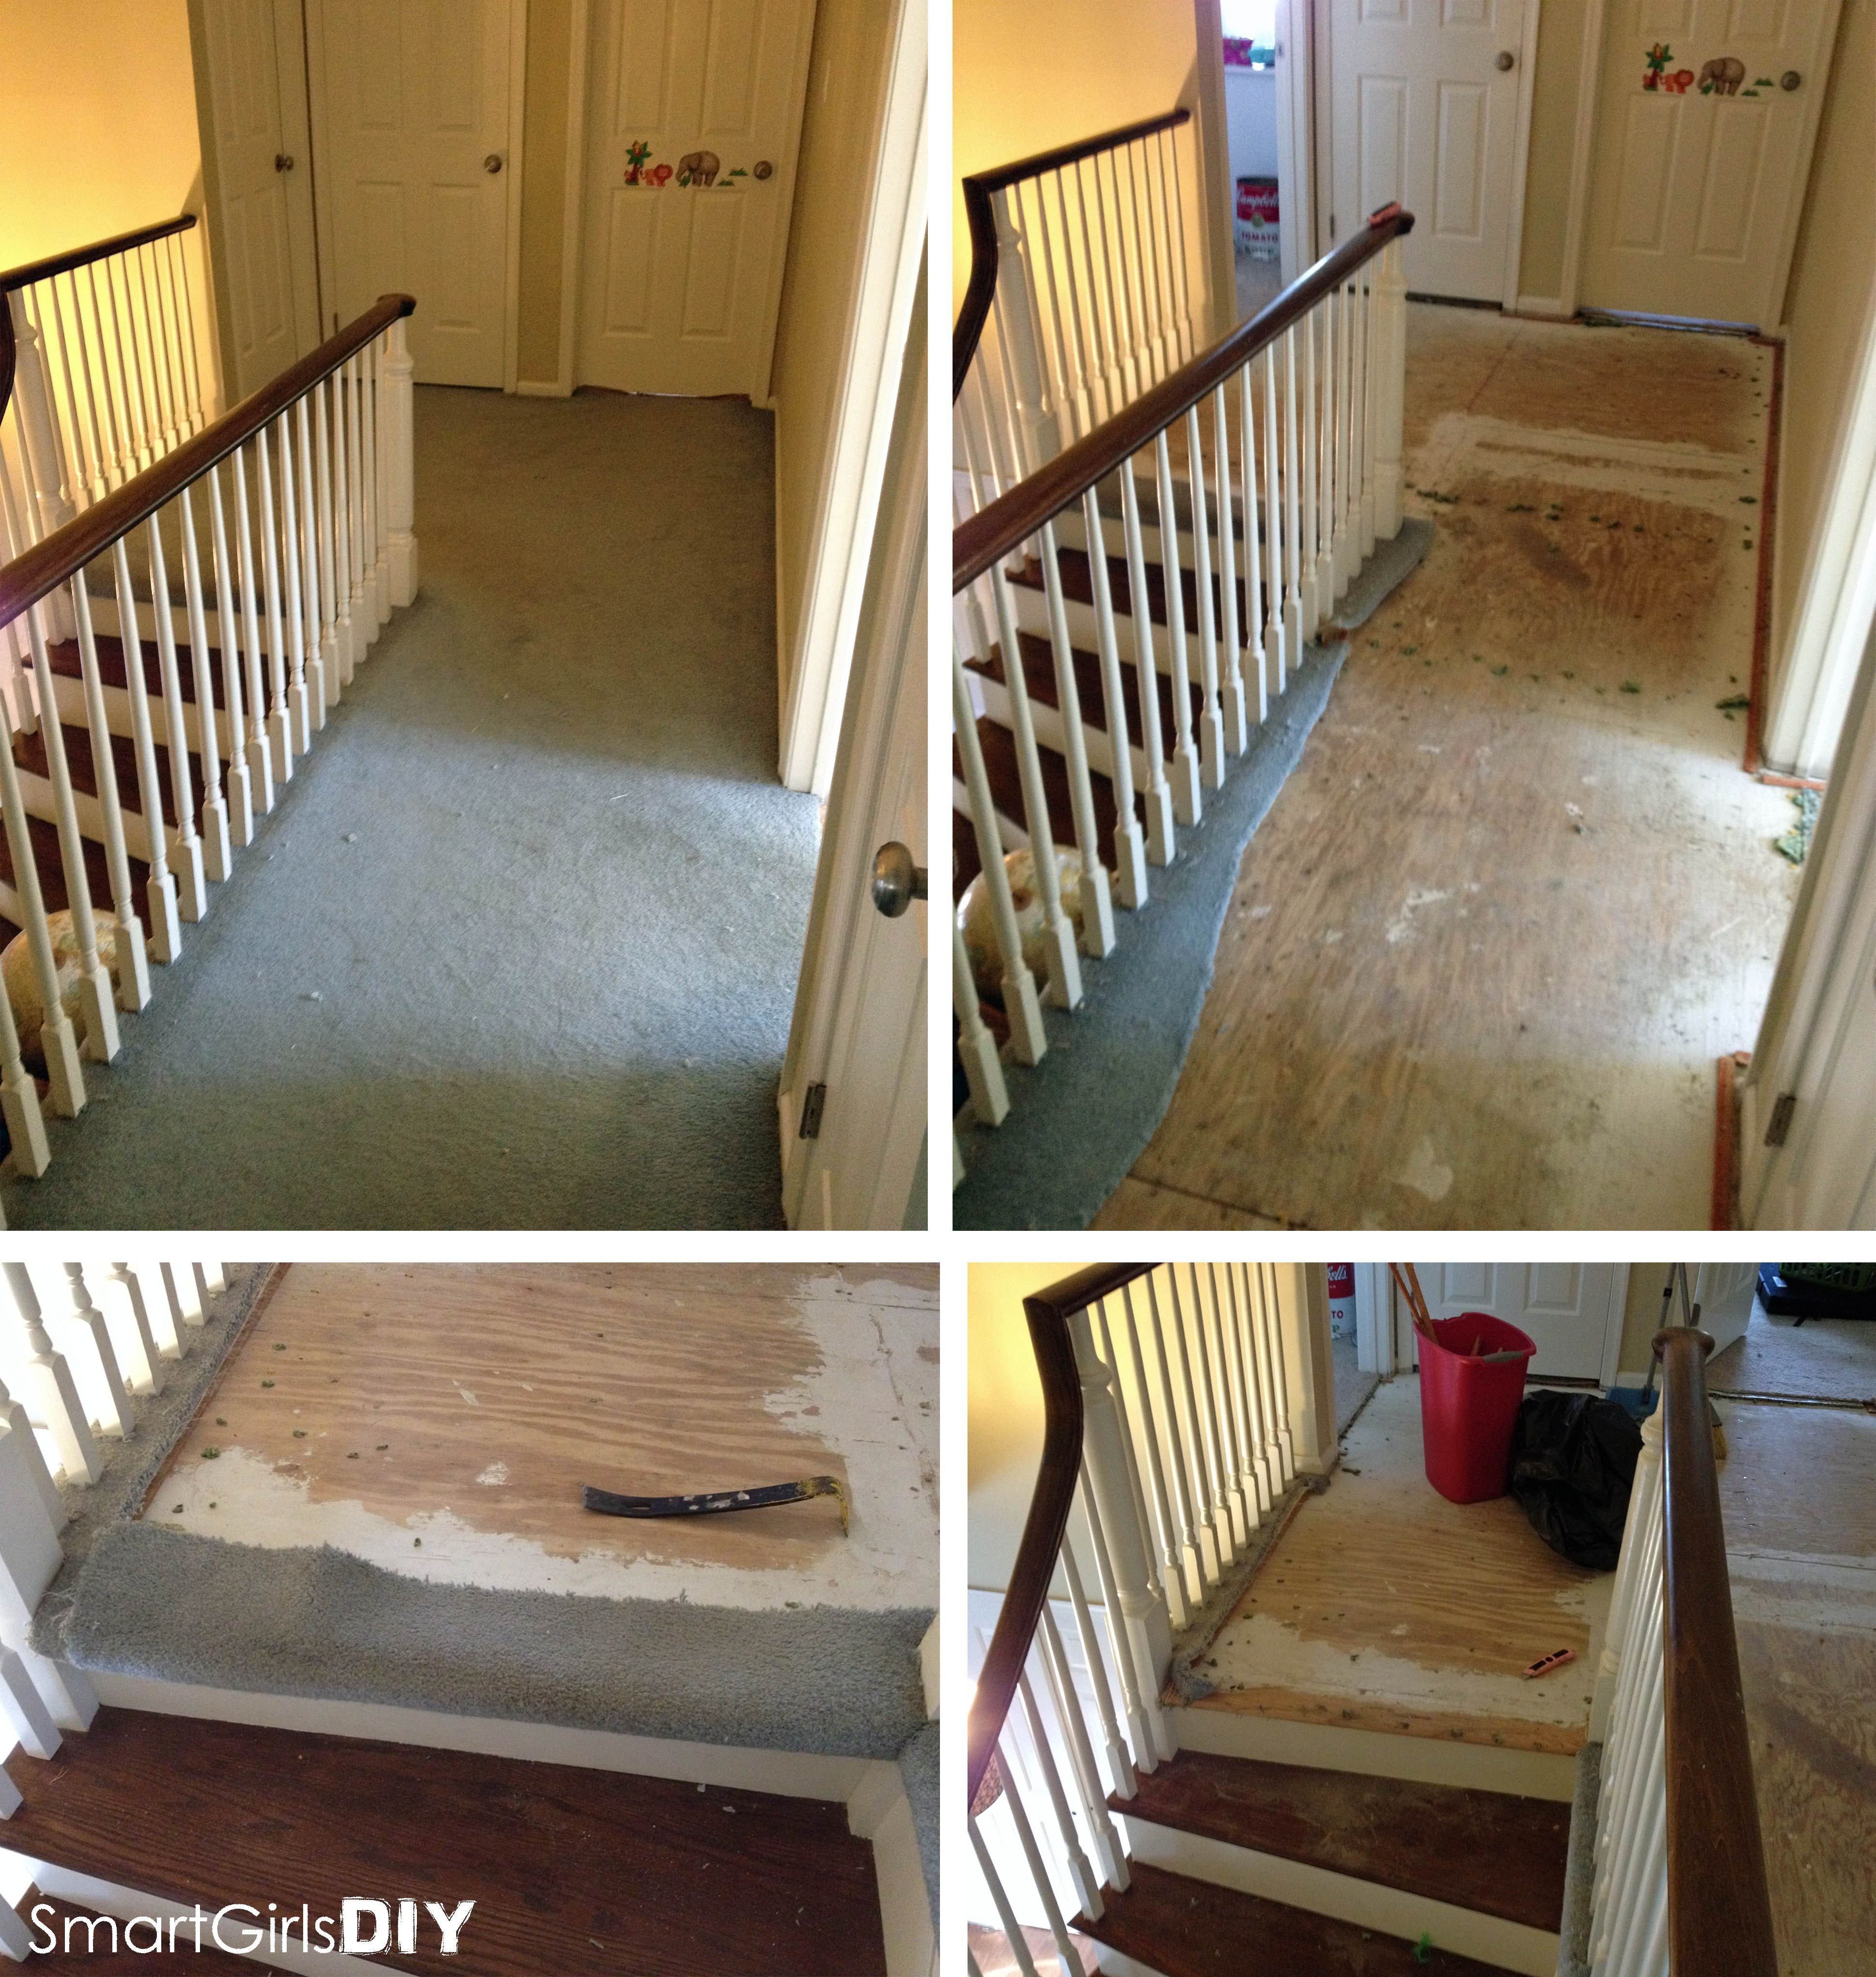 how to install hardwood flooring on concrete subfloor of upstairs hallway 1 installing hardwood floors intended for removing carpet from hallway installing the hardwood